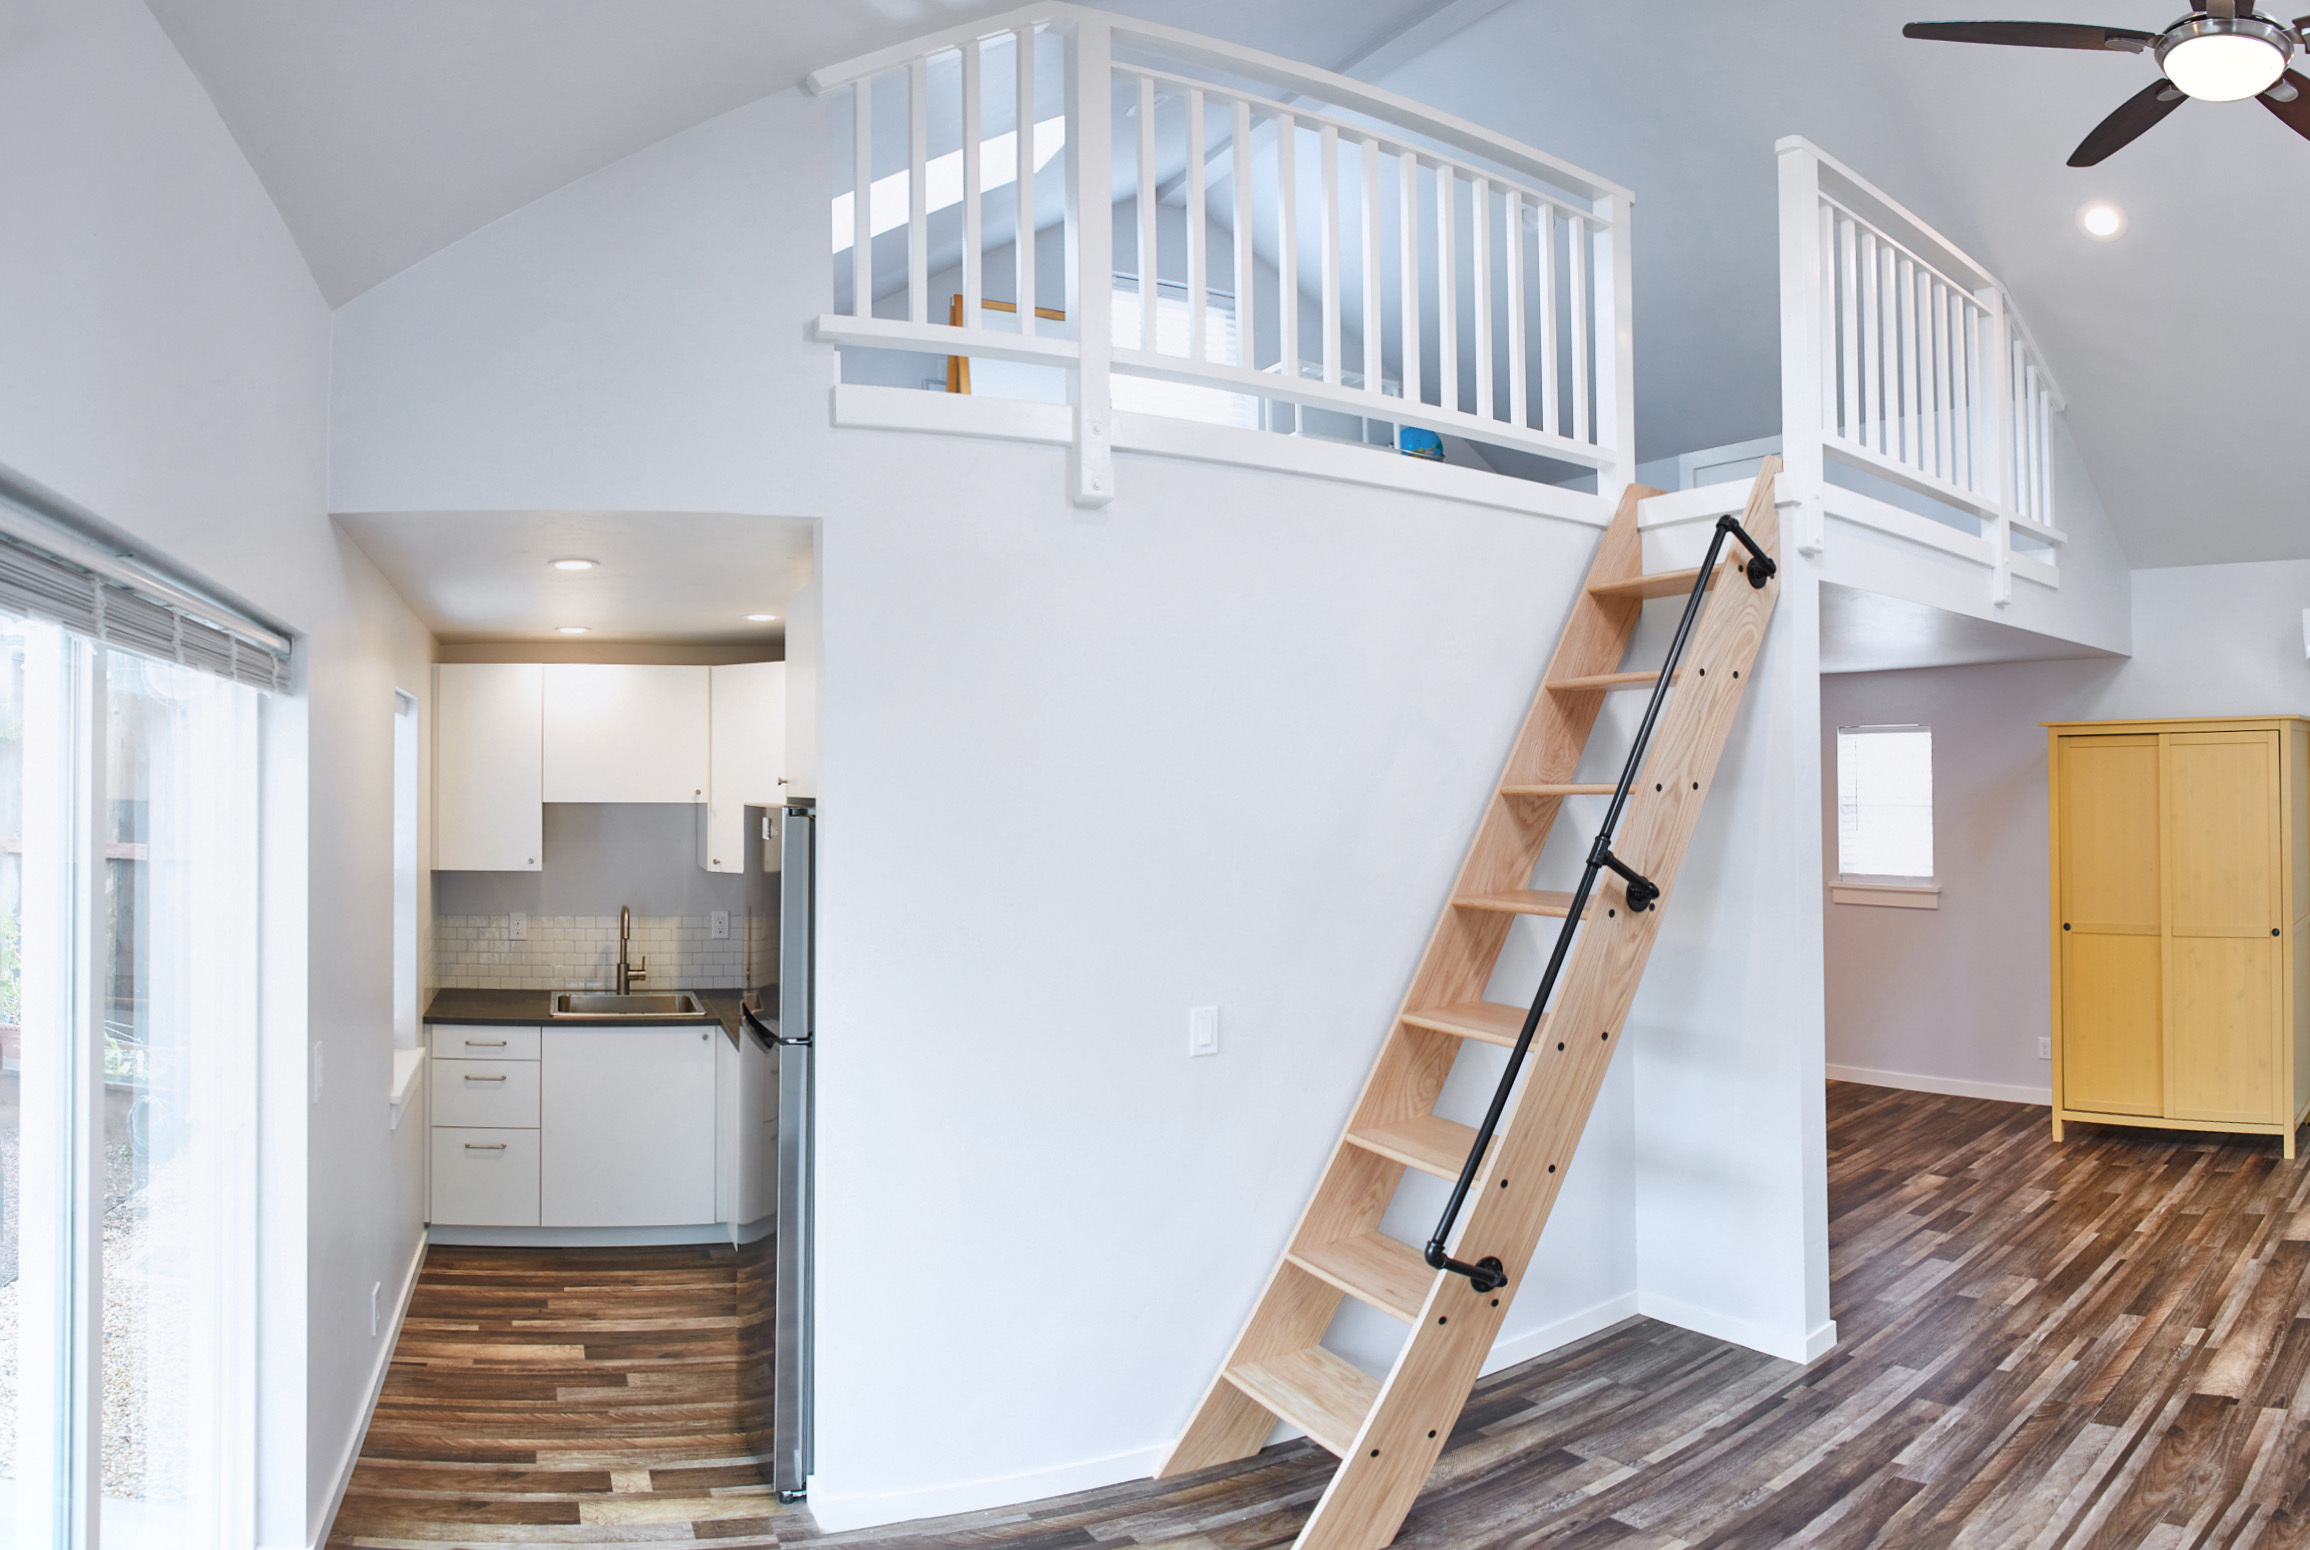 new-build-adu-with-loft-santa-cruz.jpg